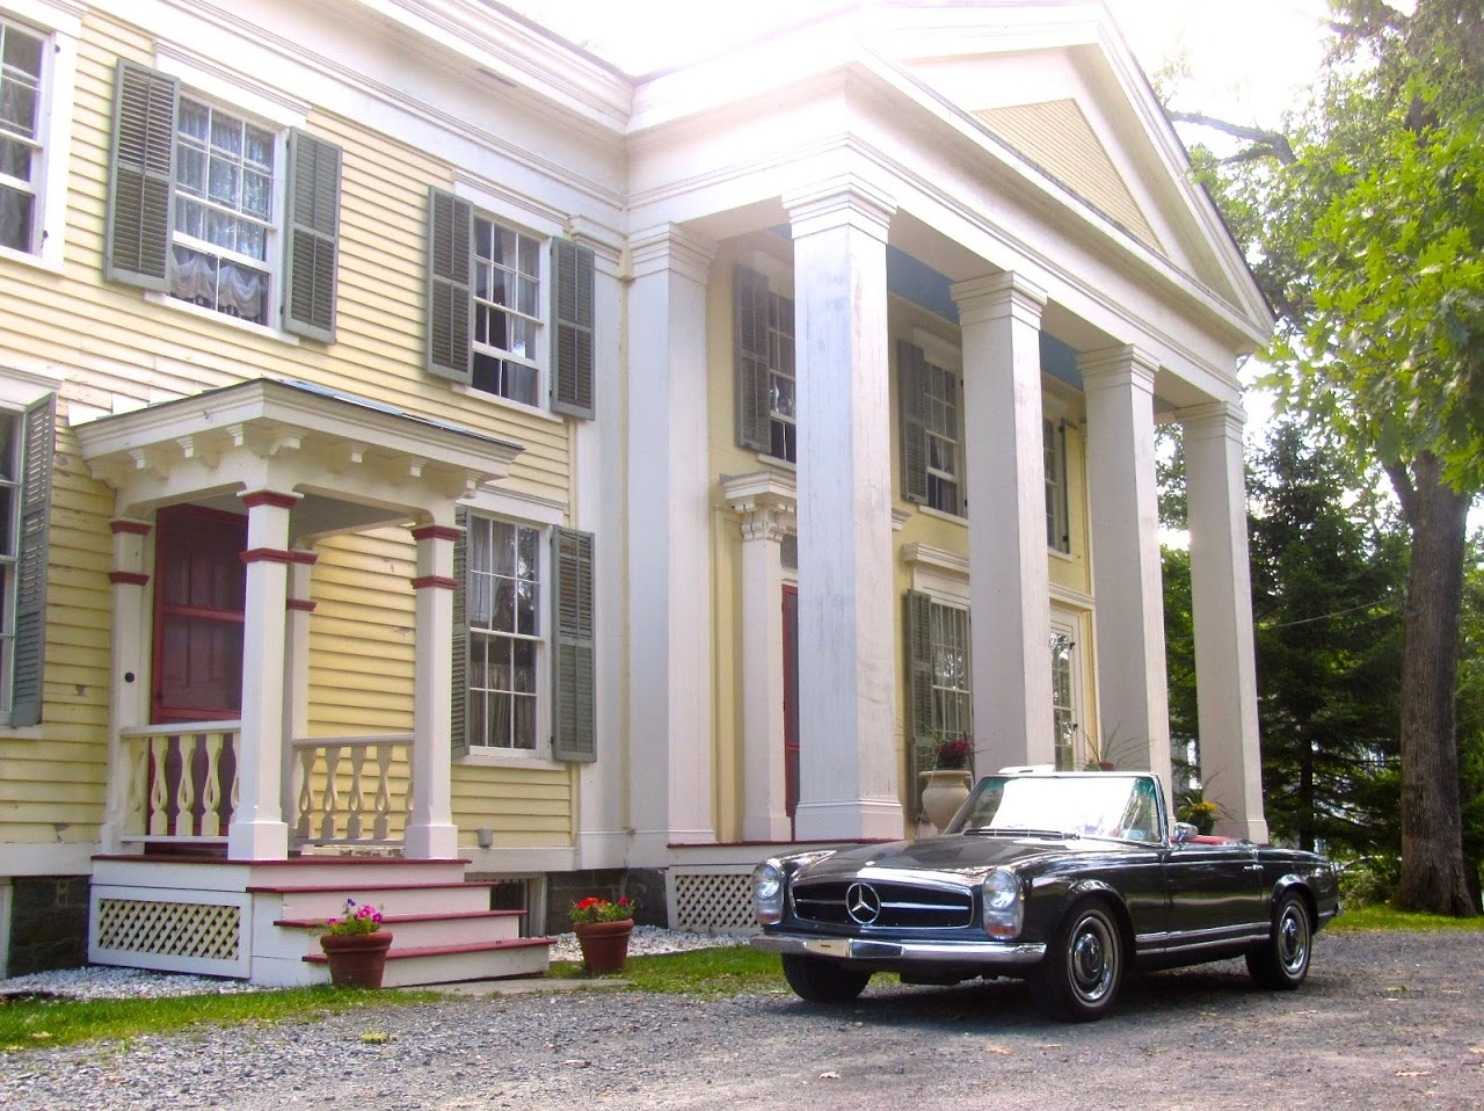 A large white building at Oakcliff Bed and Breakfast.